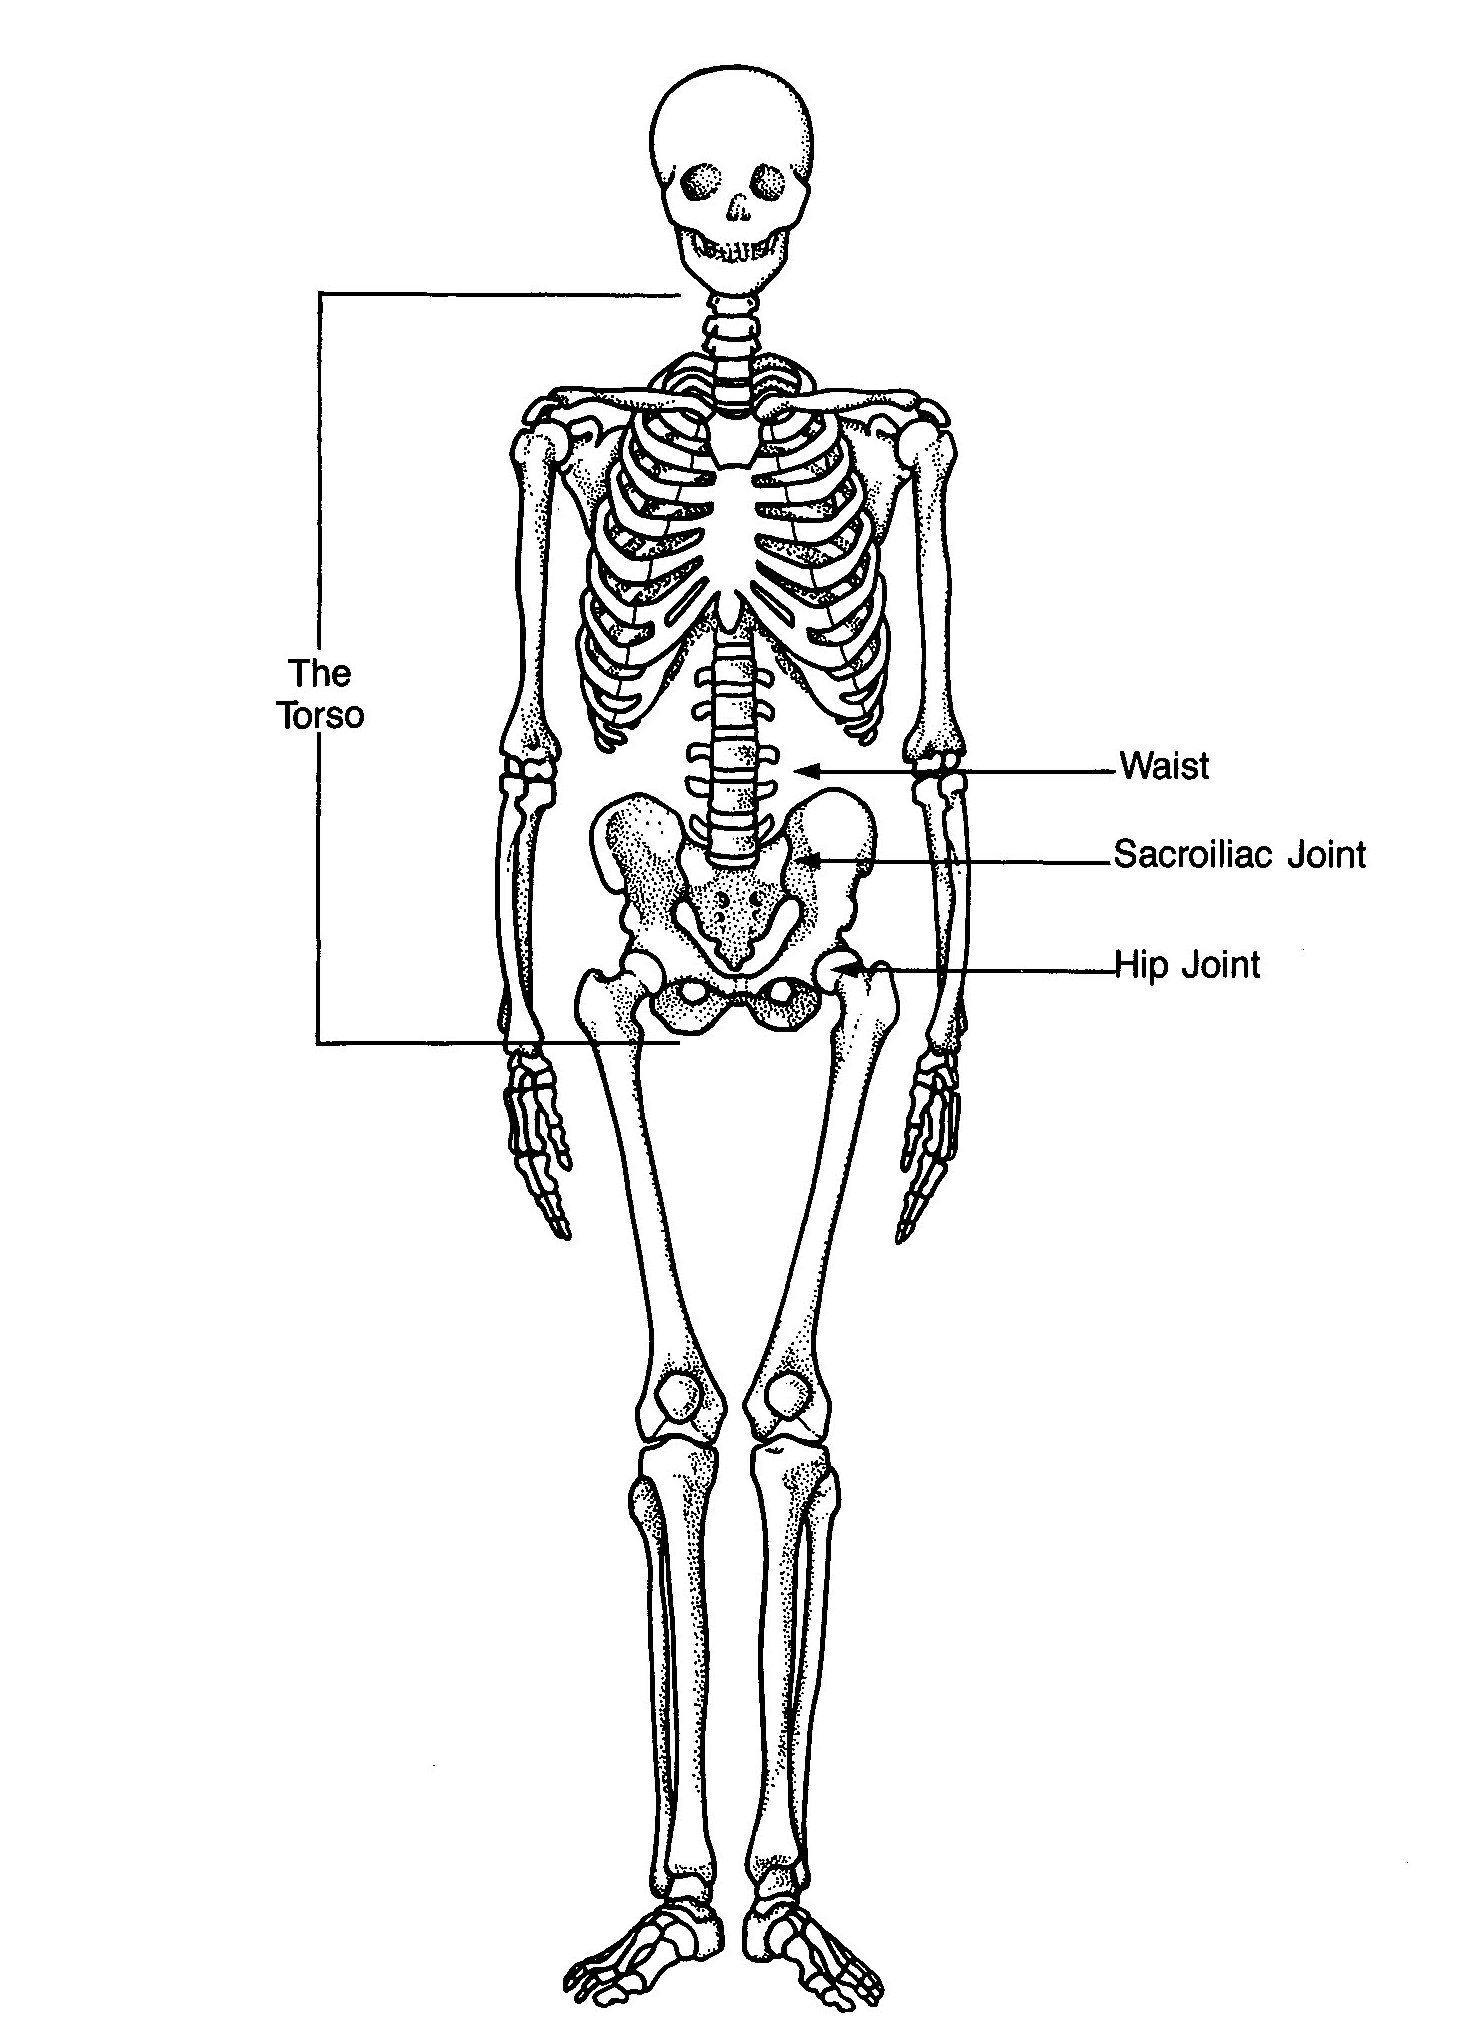 Skeleton as viewed from teh front showing the locatin of the waist vs the hip joints